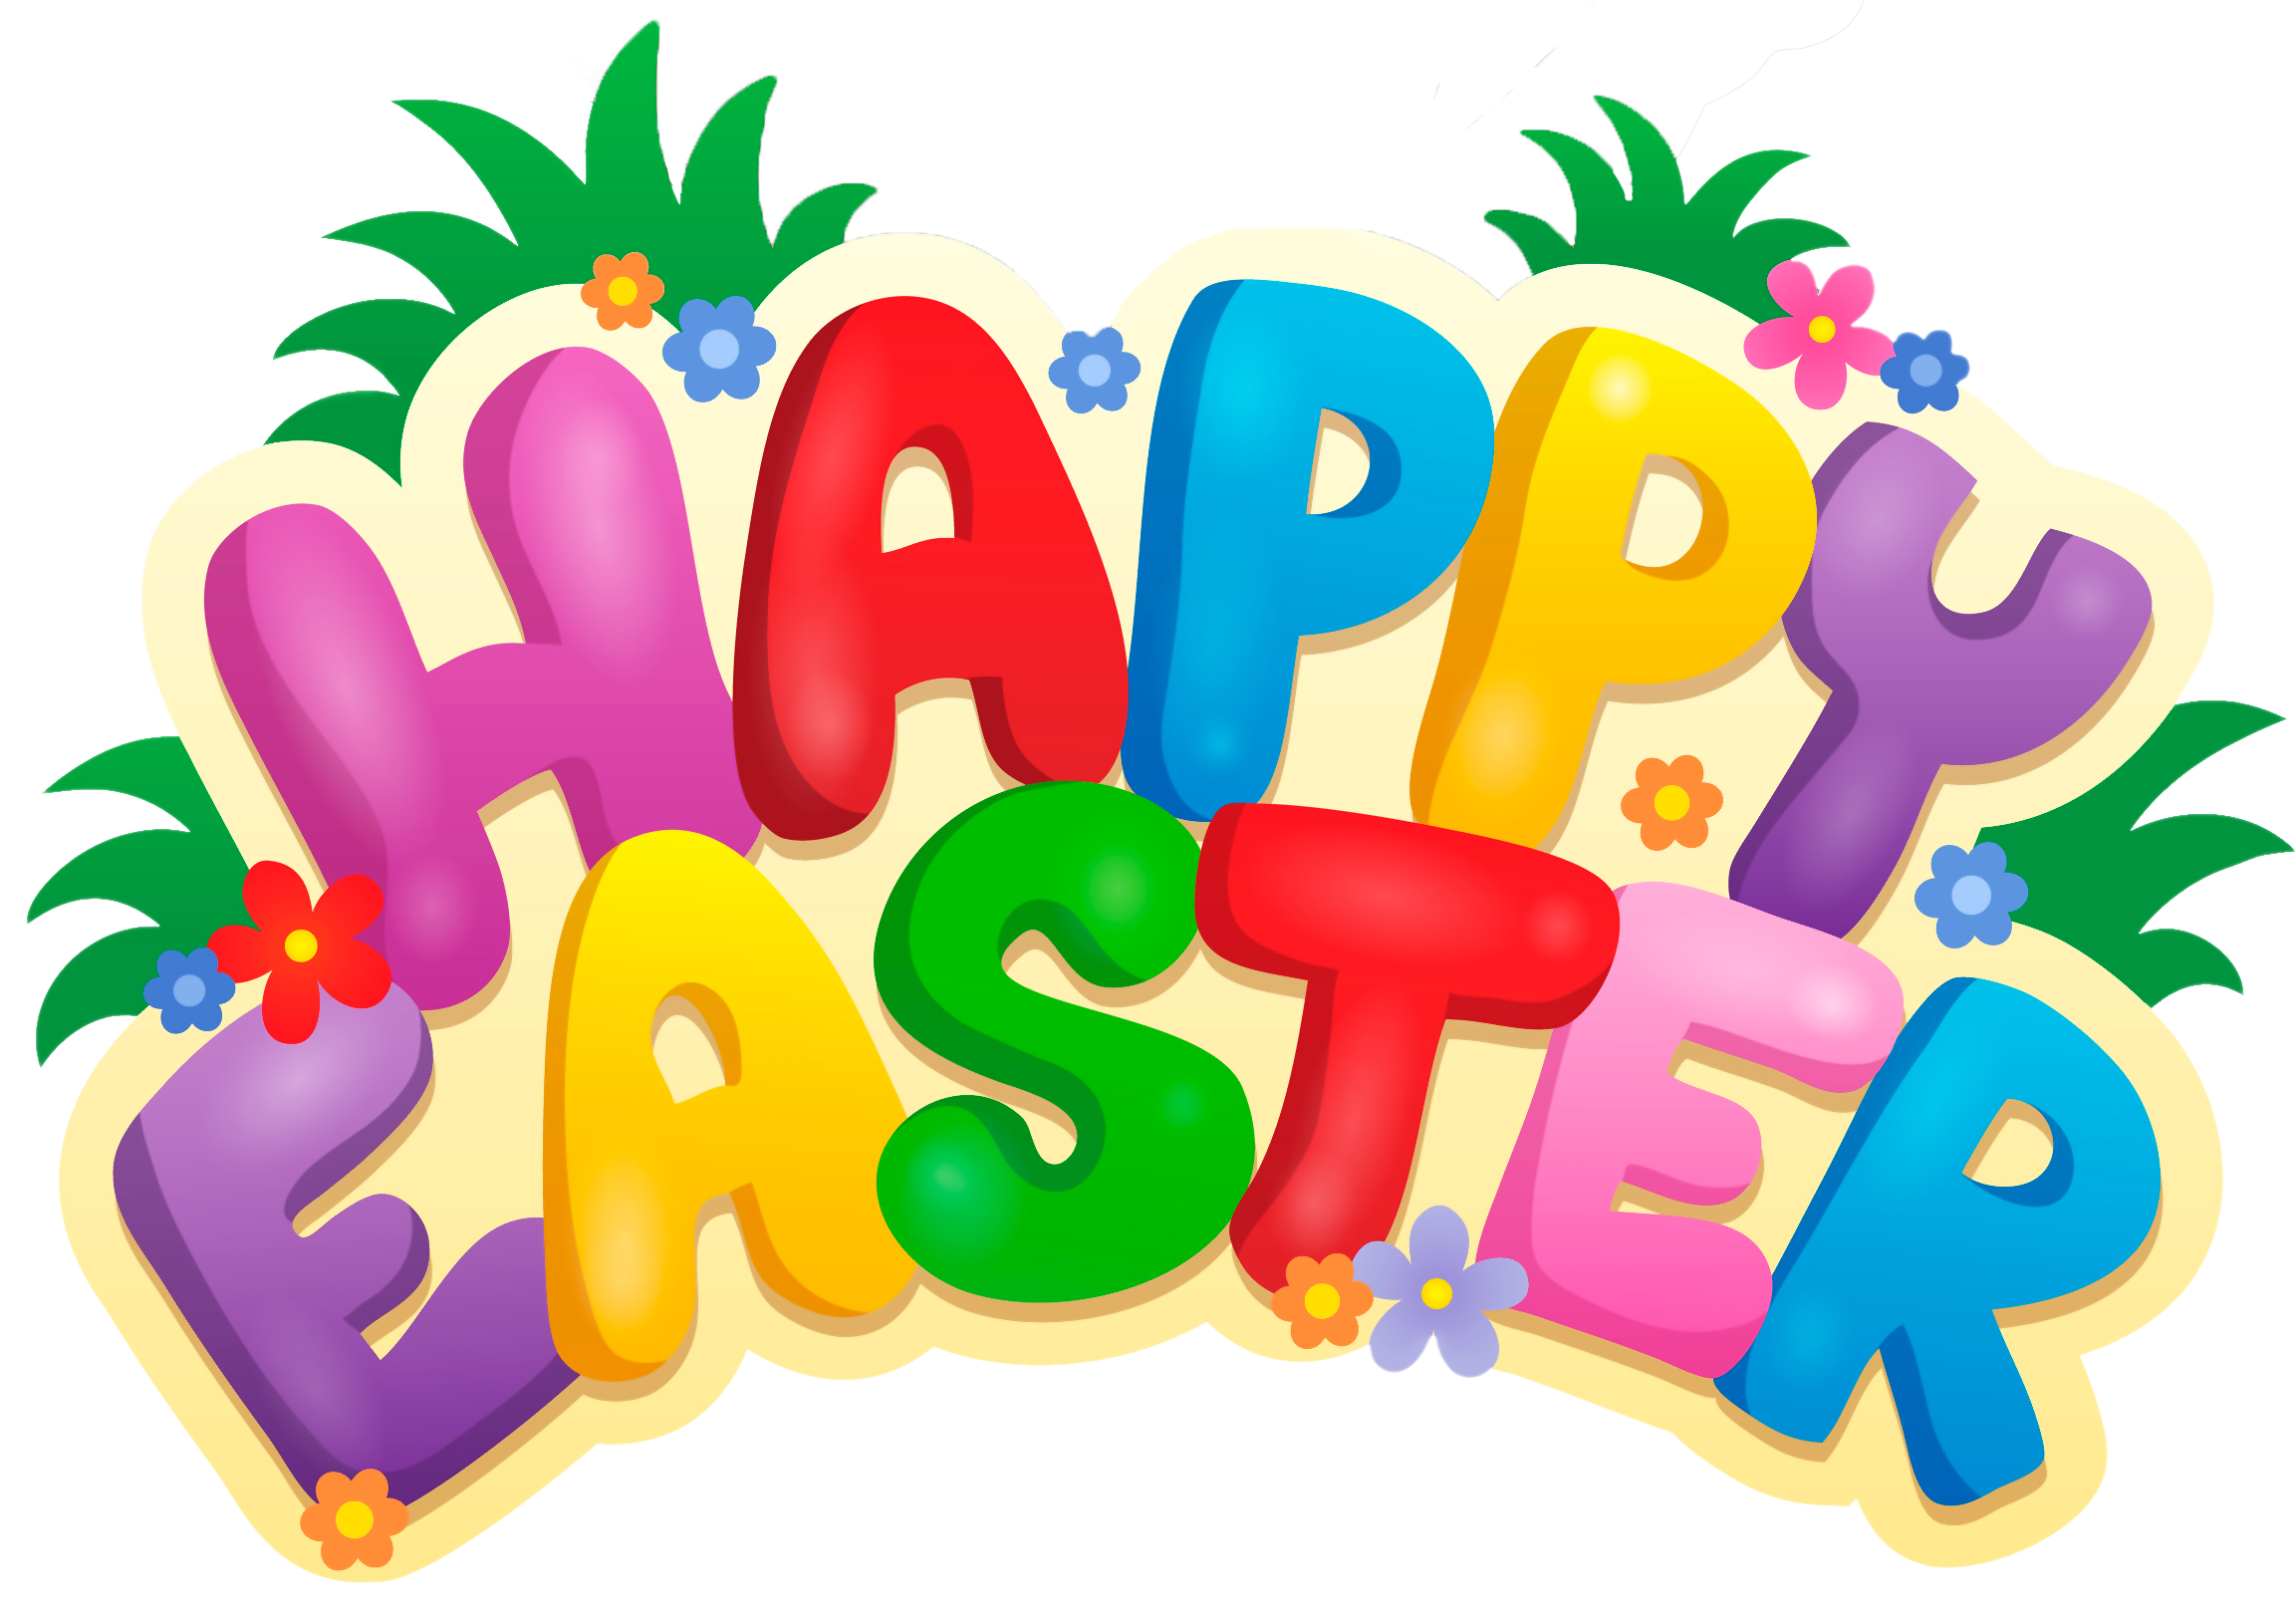 free Monday clipart sunday. Easter cilpart stunning design.